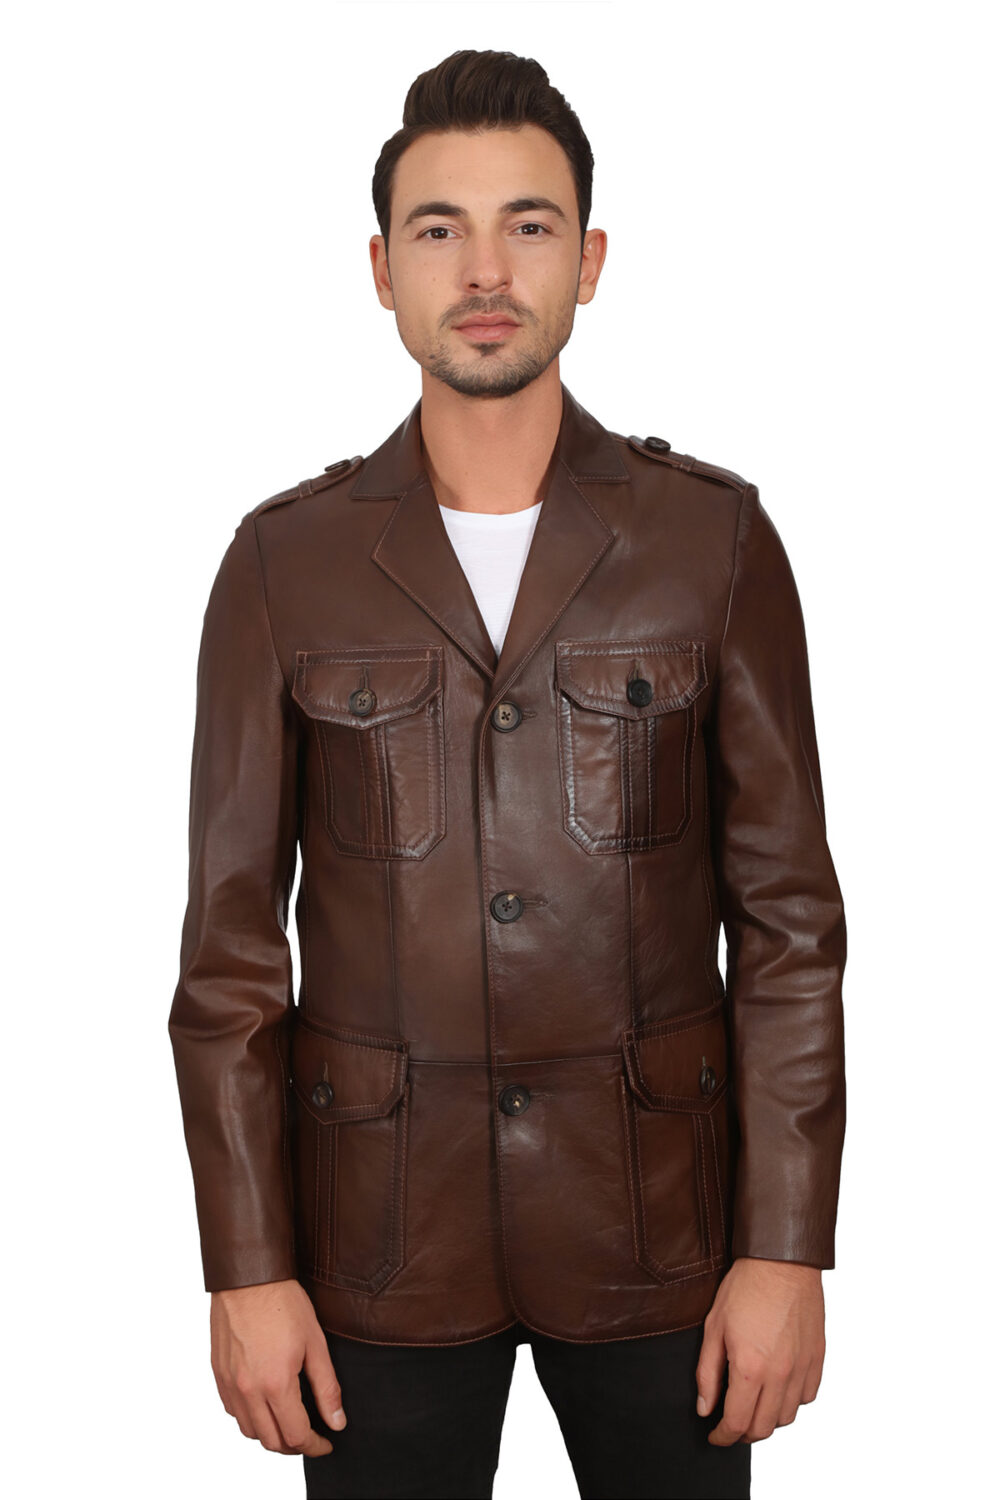 Men's Leather Suit Jacket